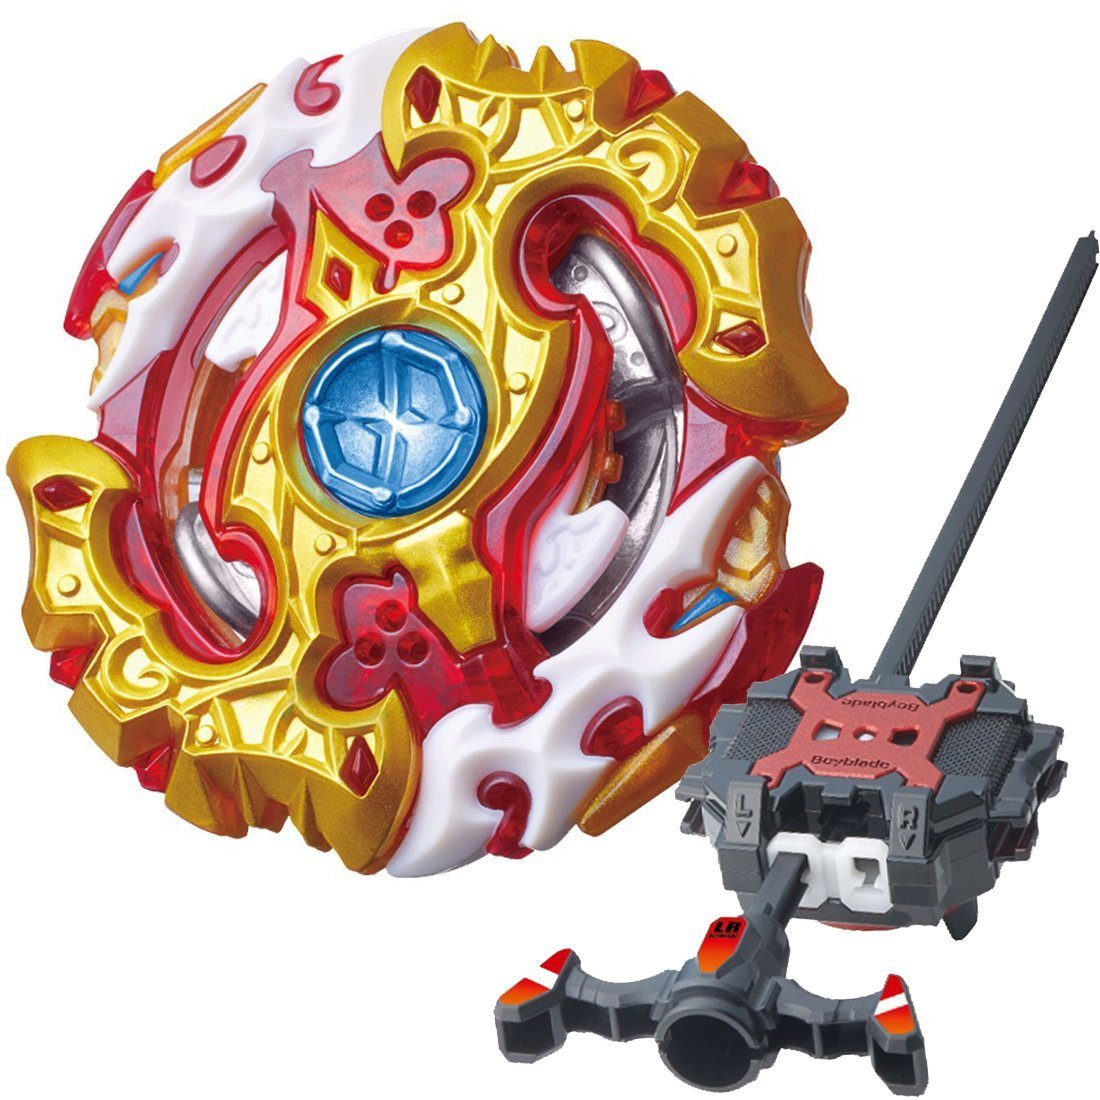 Burst Starter BB-100 Starter Spriggan Requiem.0..Zt With Beyblade Burst Launcher LR Two-Way String Launcher Toy LFtoys